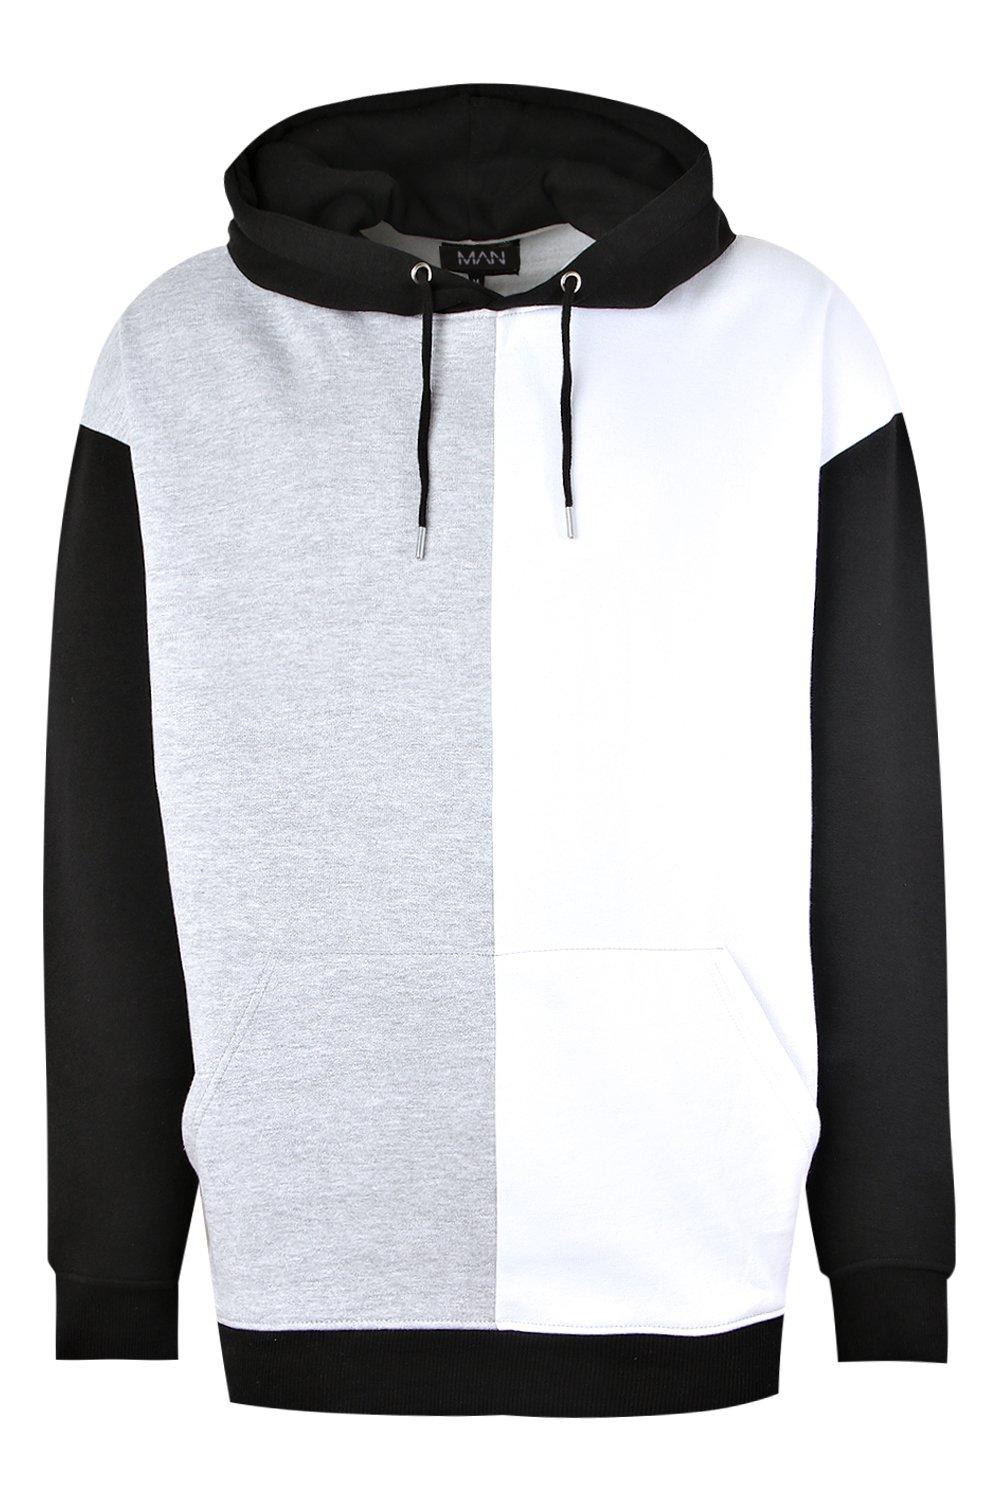 boohooMAN black Oversized Colour Block Over The Head Hoodie